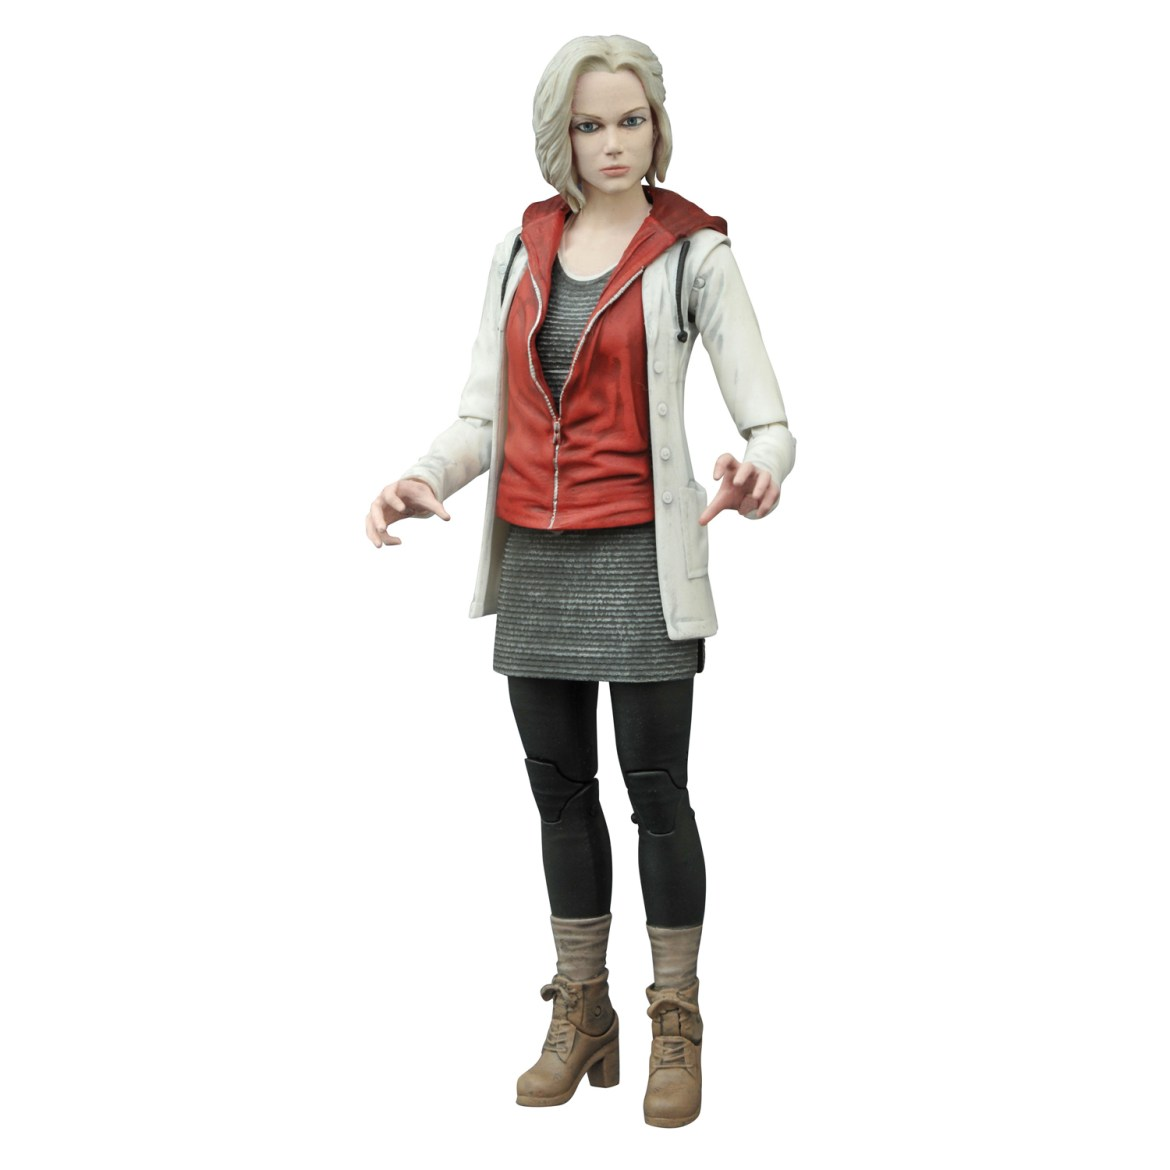 iZombie's Liv Moore Action Figure has Been Revealed!!